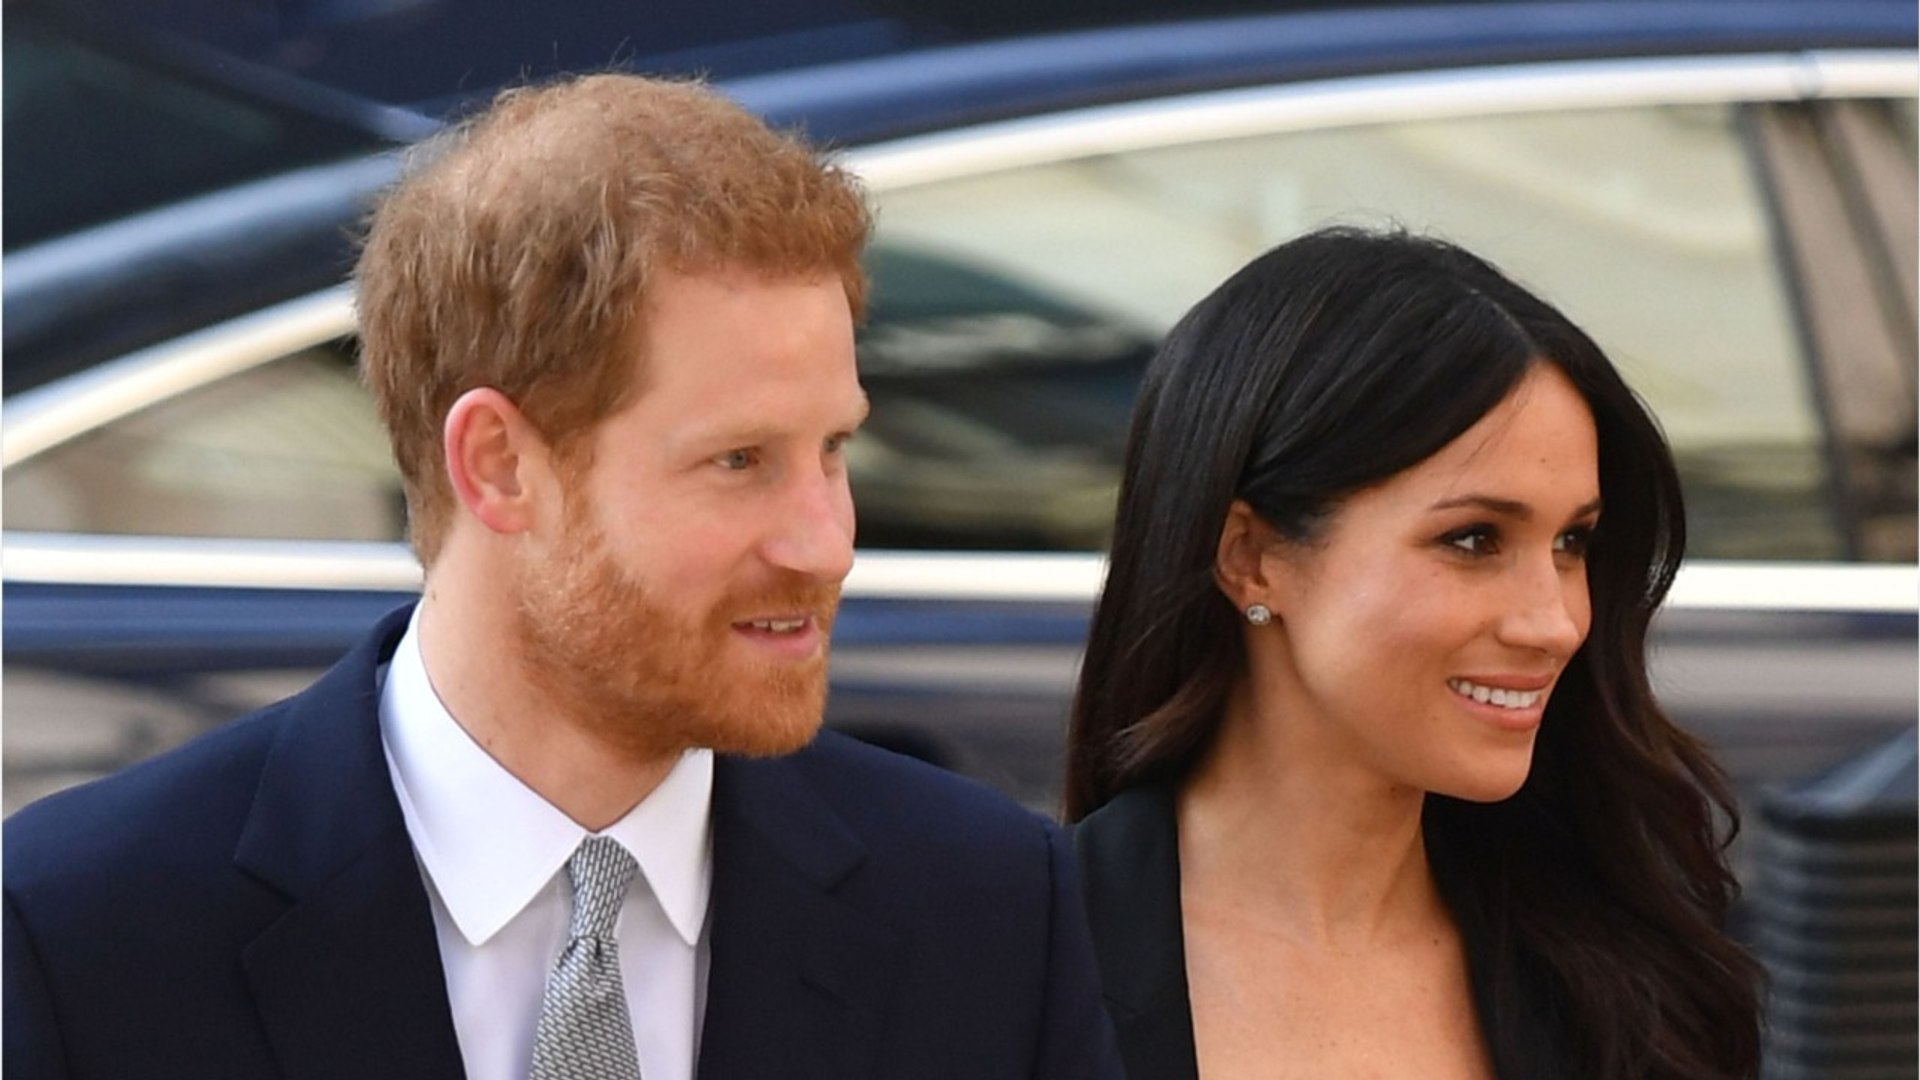 Musicians Revealed For Harry And Meghan's Church Service